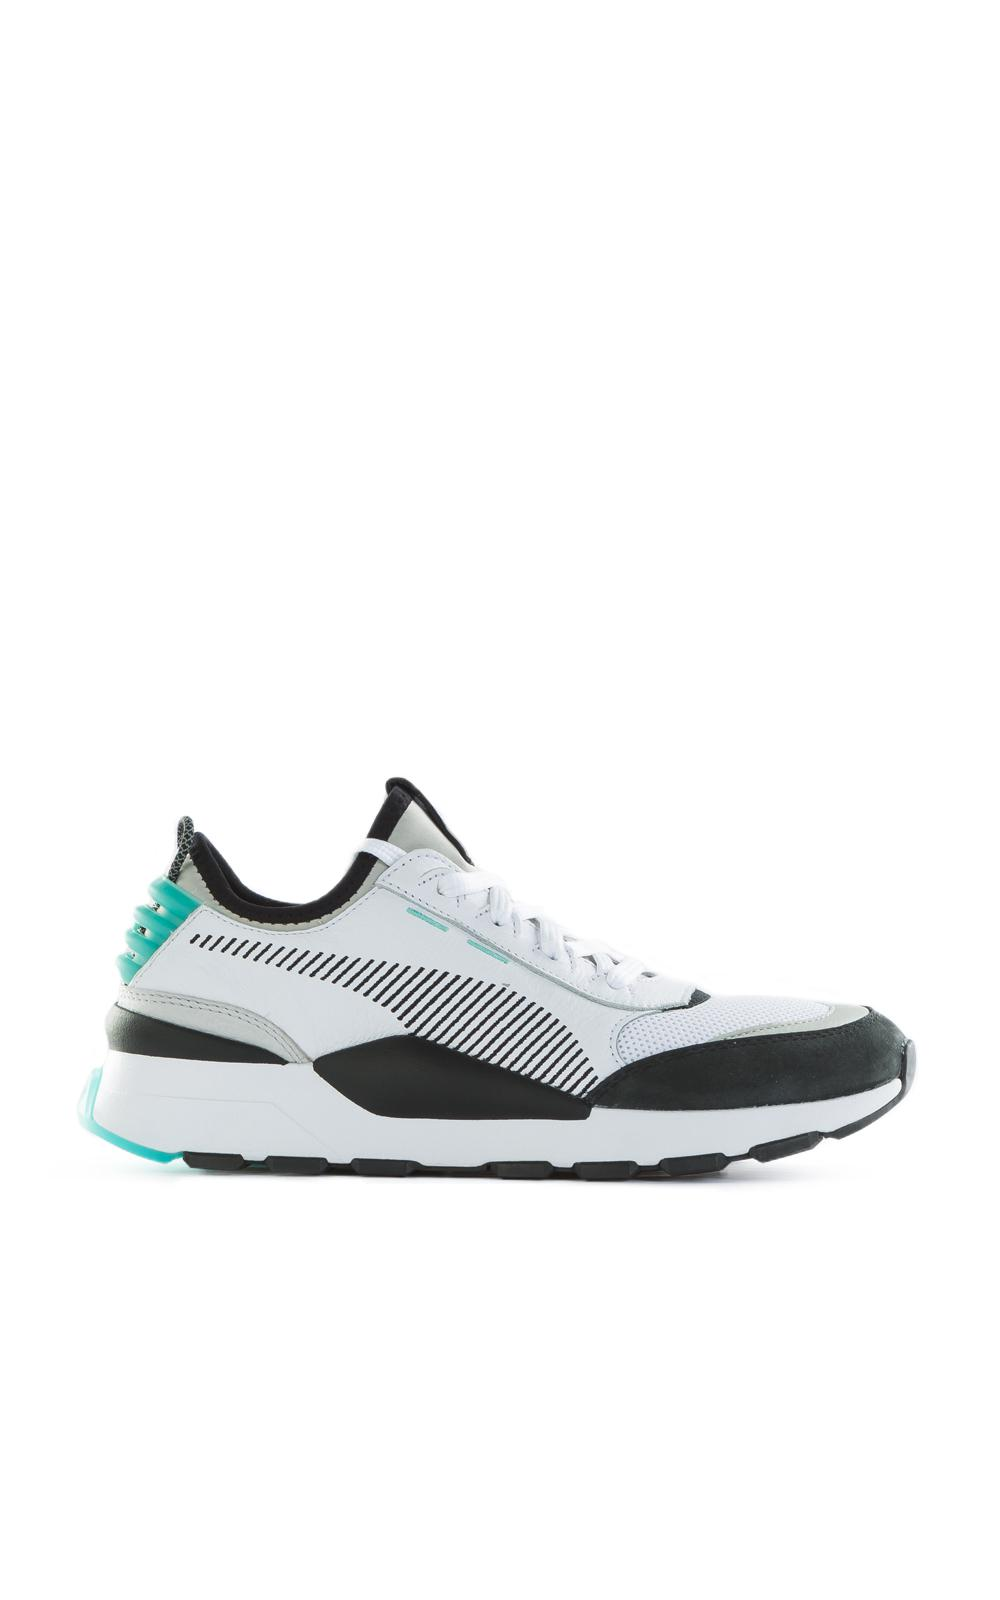 81d5f02883a3 Puma Rs-0 Re-invention White green in White for Men - Lyst